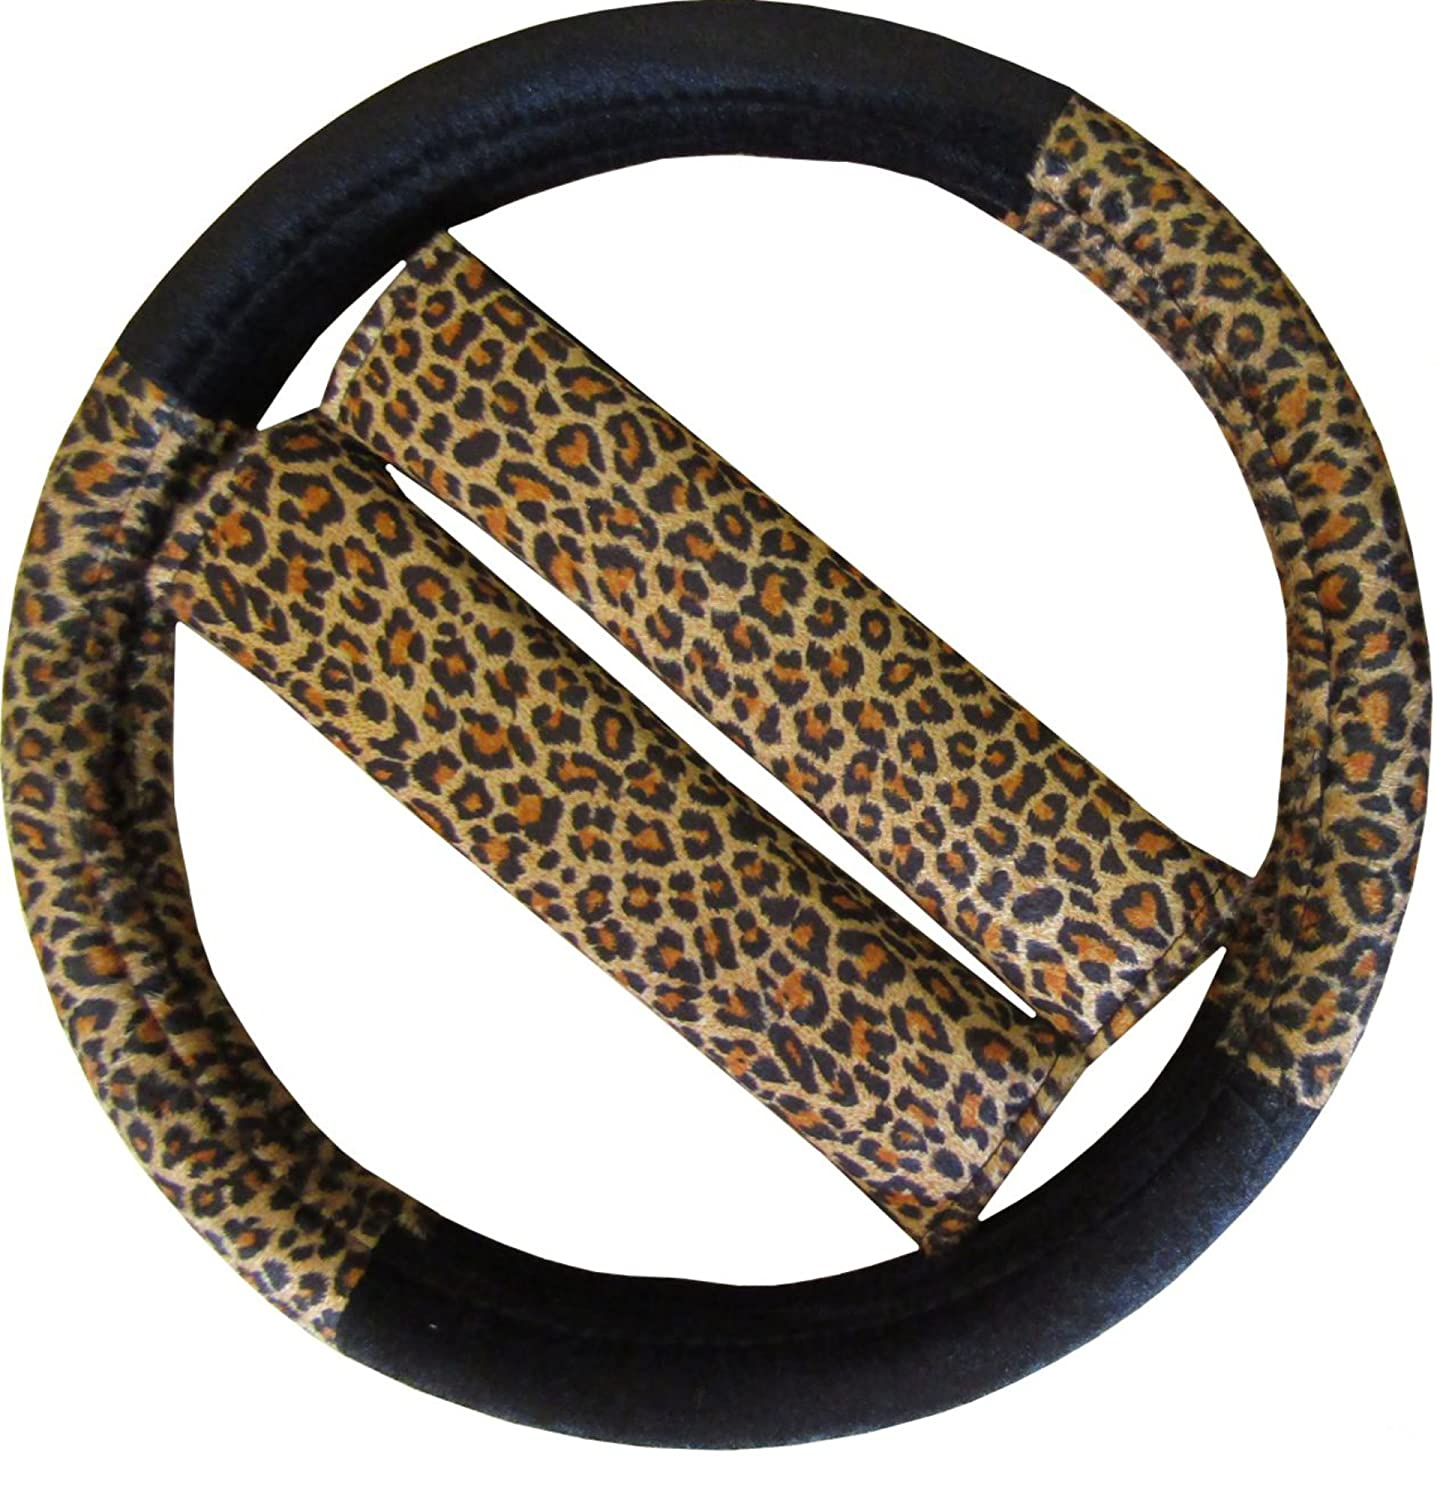 XtremeAuto® Leopard Print Car Steering Cover Glove + Seat Belt Harness Pads XtremeAuto®